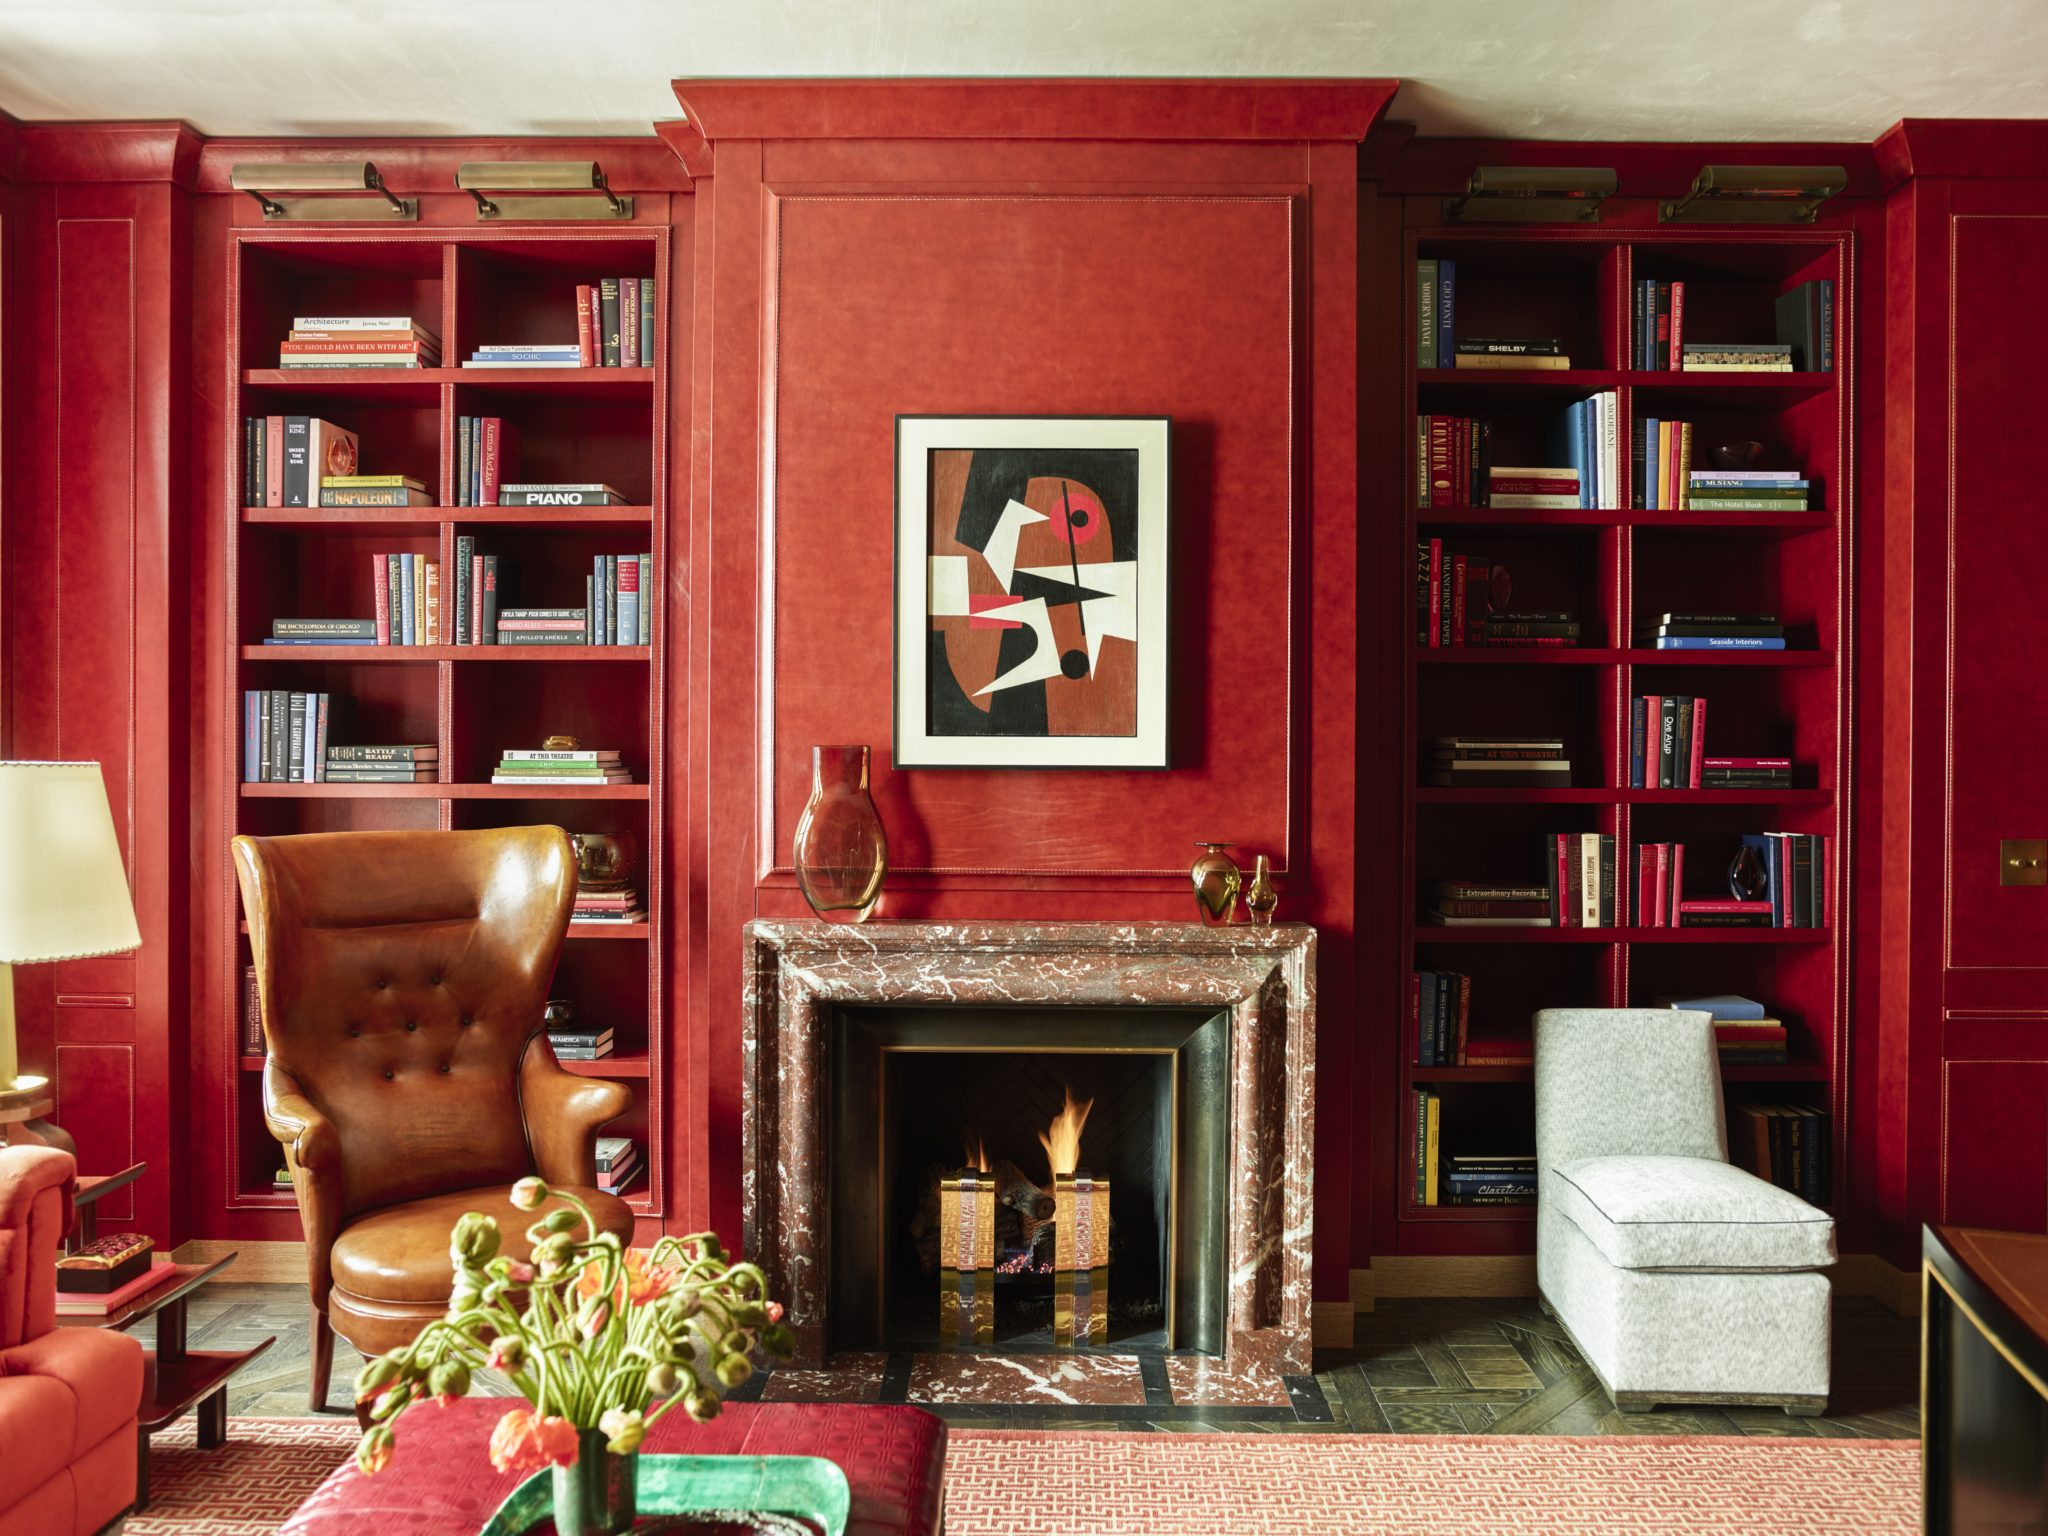 In an historically significant building in Chicago with spectacular views of Lake Michigan, Gambrel worked with theChicago-based firm Liederbach & Graham Architects; the designerlined the library insaddle-stitched red leatherin homage toFrances Elkins and David Adler whosefamous library for the 1927 Clow House in Lake Forest, Illinois, Gambrel considers one of the most beautiful rooms of the twentieth century.